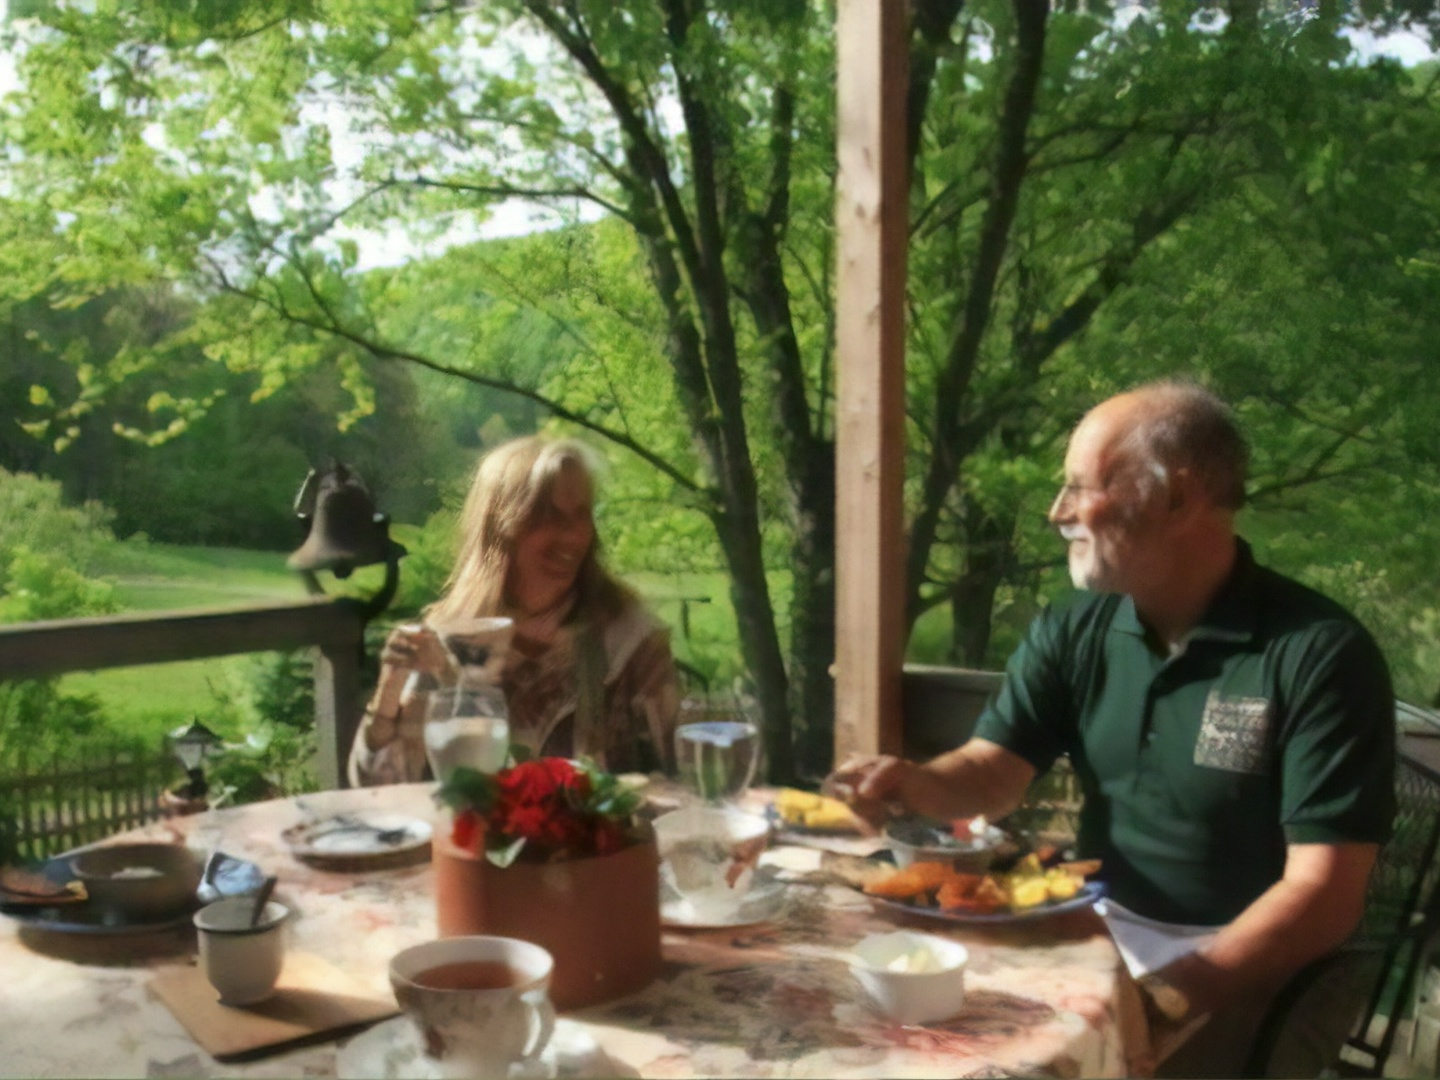 A group of people sitting at a table eating food at Snug Hollow Farm Bed and Breakfast.